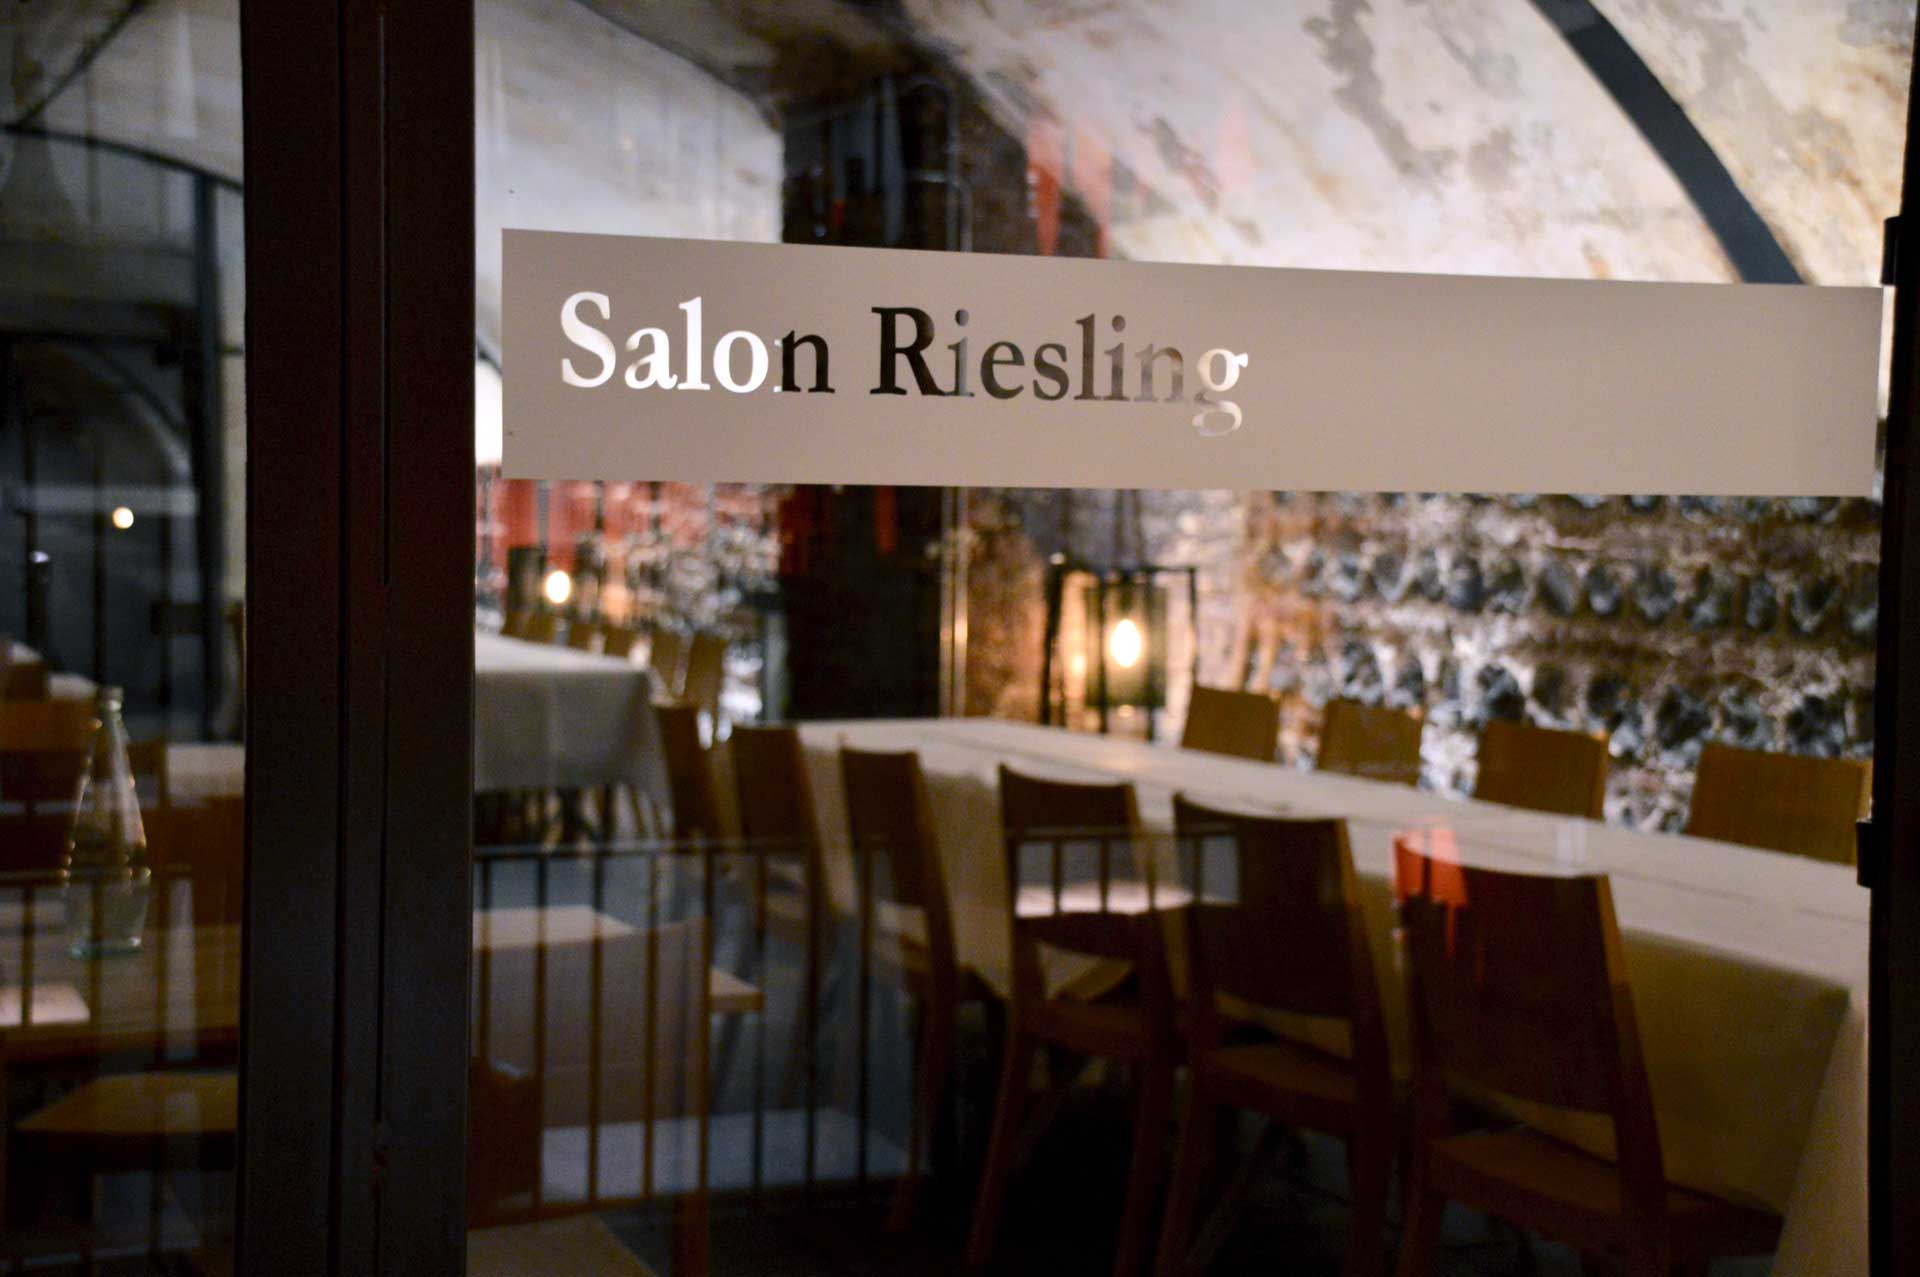 Salon Riesling - Winebank Köln